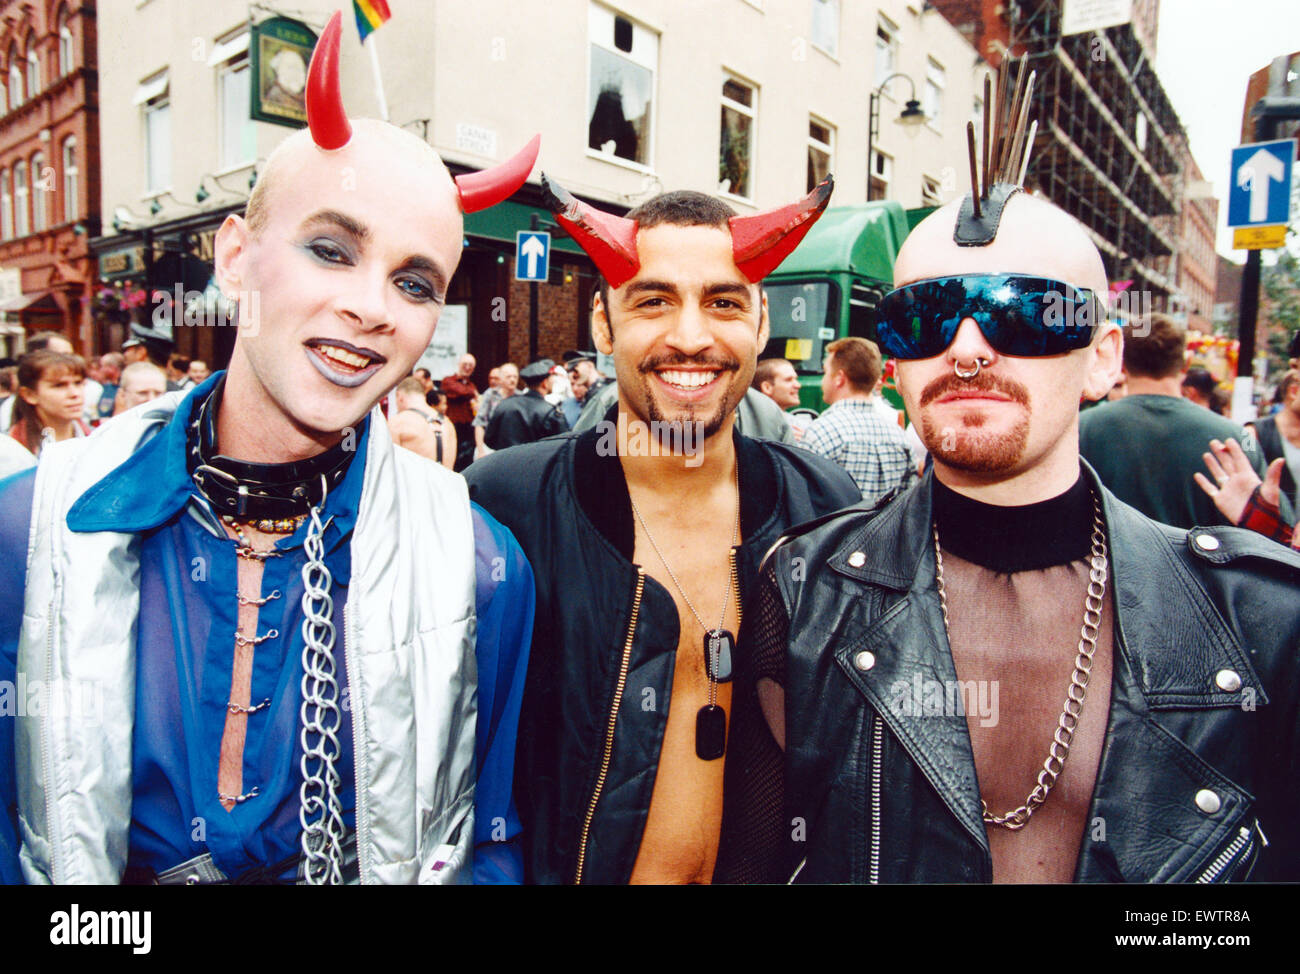 Revellers at Mardis Gras. 25th August 1995. - Stock Image